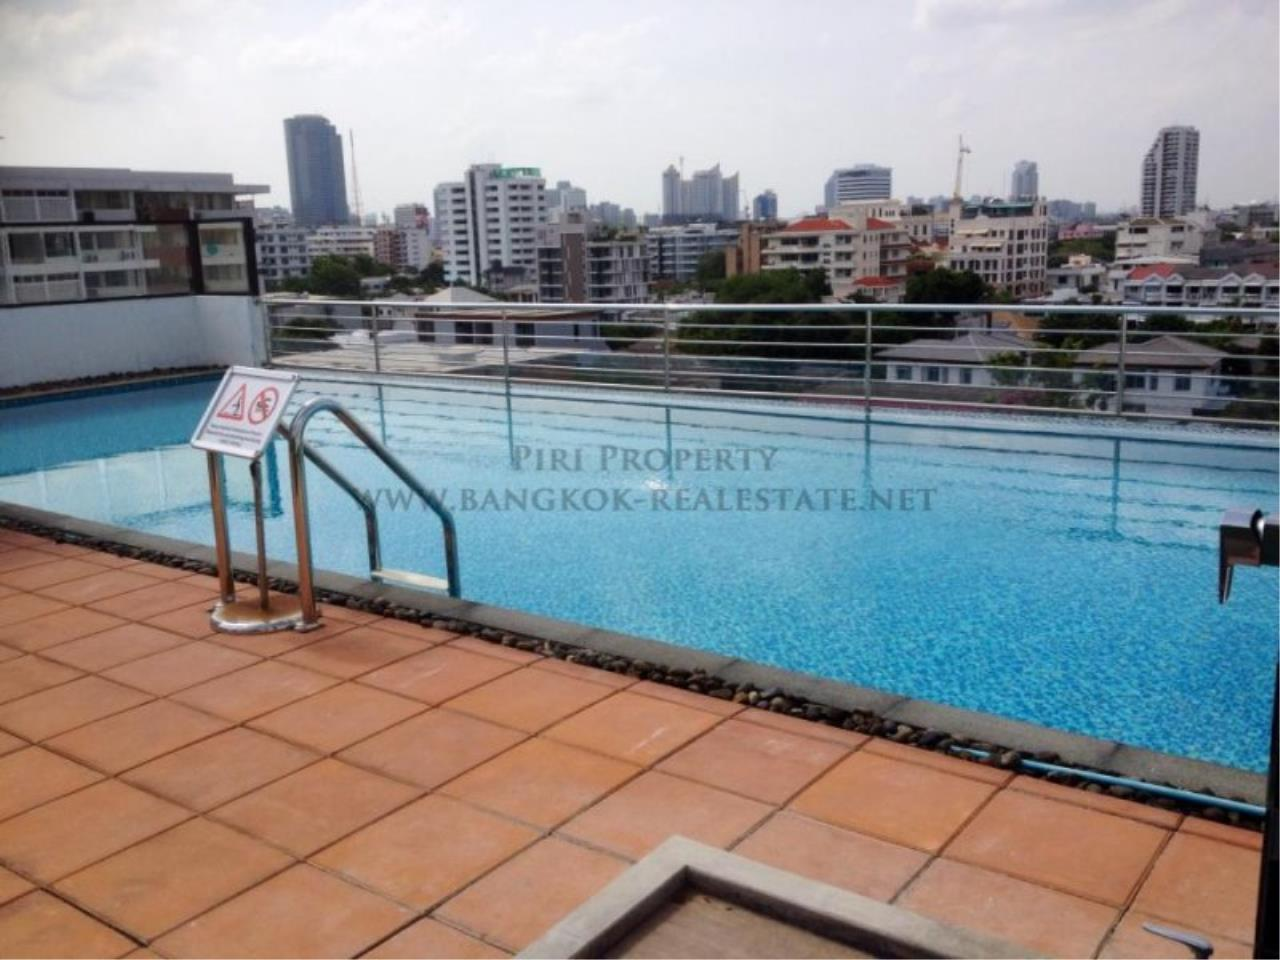 Piri Property Agency's Nice 1 Bedroom Condo in Thonglor for Rent - Tidy Thonglor 12